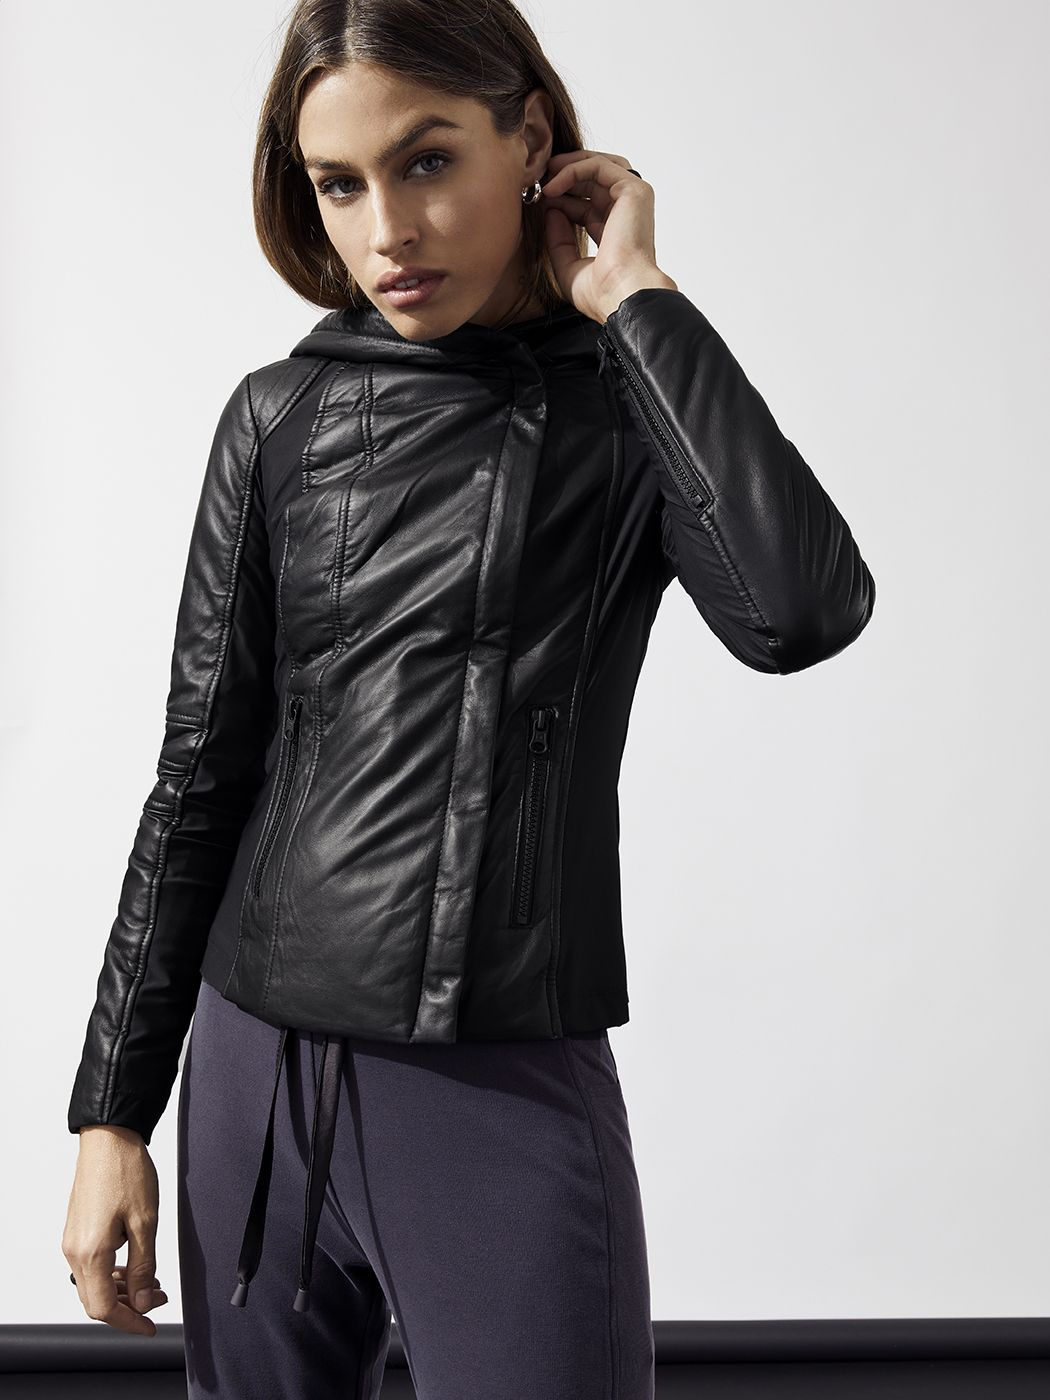 Hooded Leather Puffer Jacket In Black By Blanc Noir From Carbon38 Outerwear Shop Cold Weather Jackets Activewear Fashion [ 1400 x 1050 Pixel ]